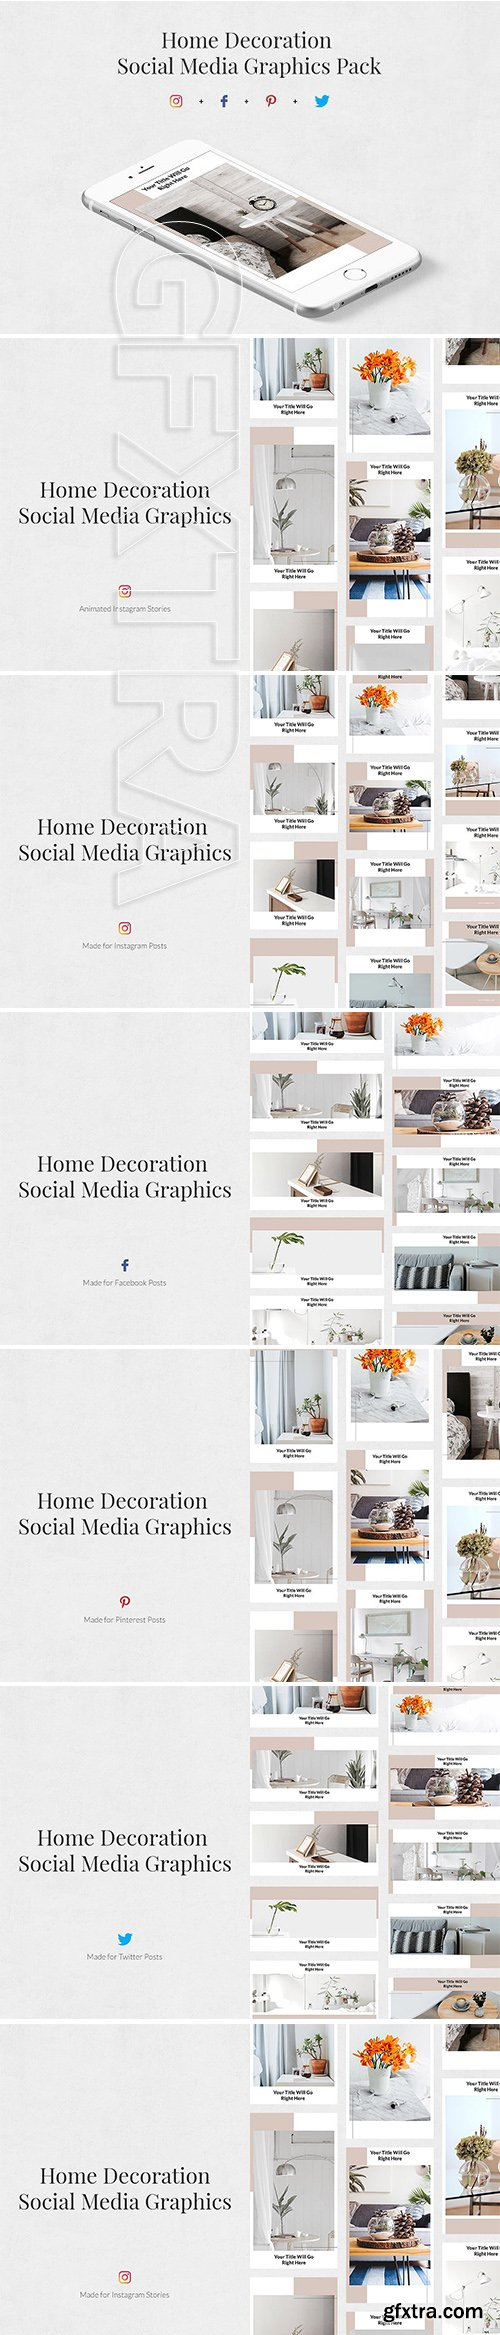 CreativeMarket - Home Decoration Pack 3363675